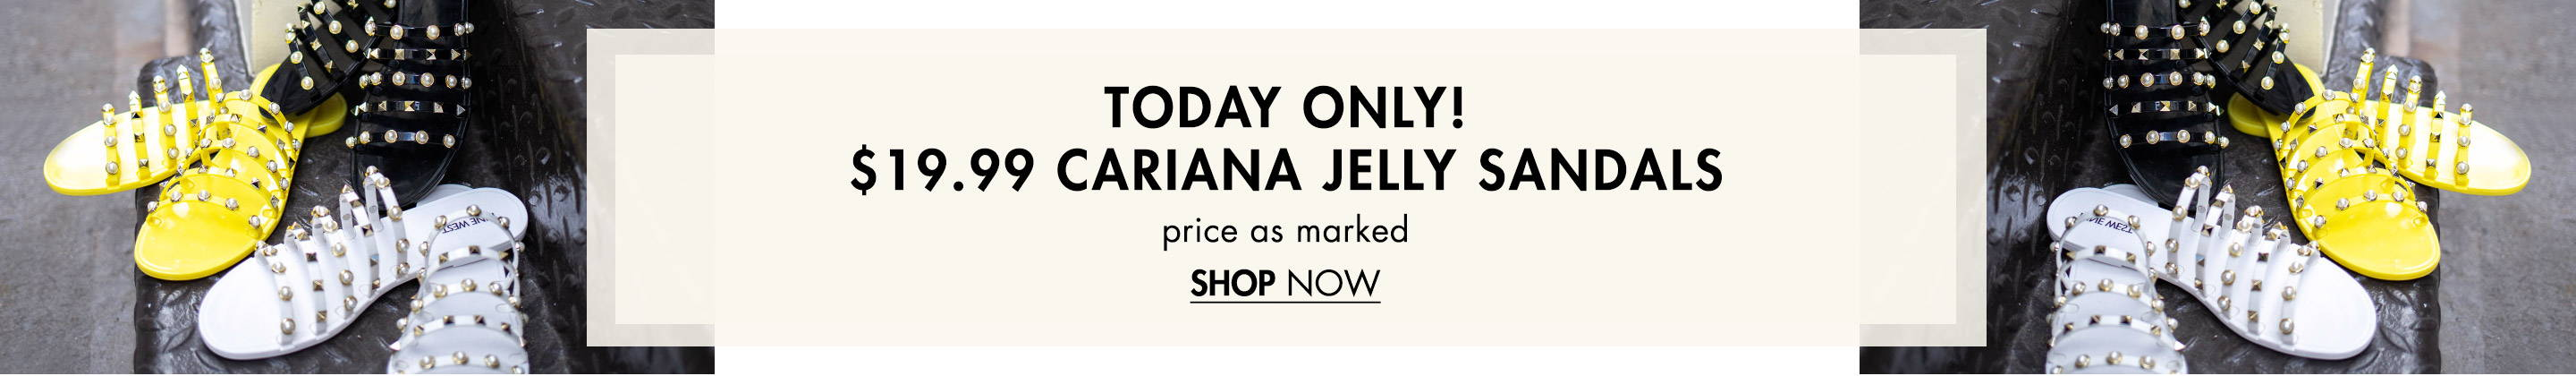 $19.99 Cariana Jelly Sandals